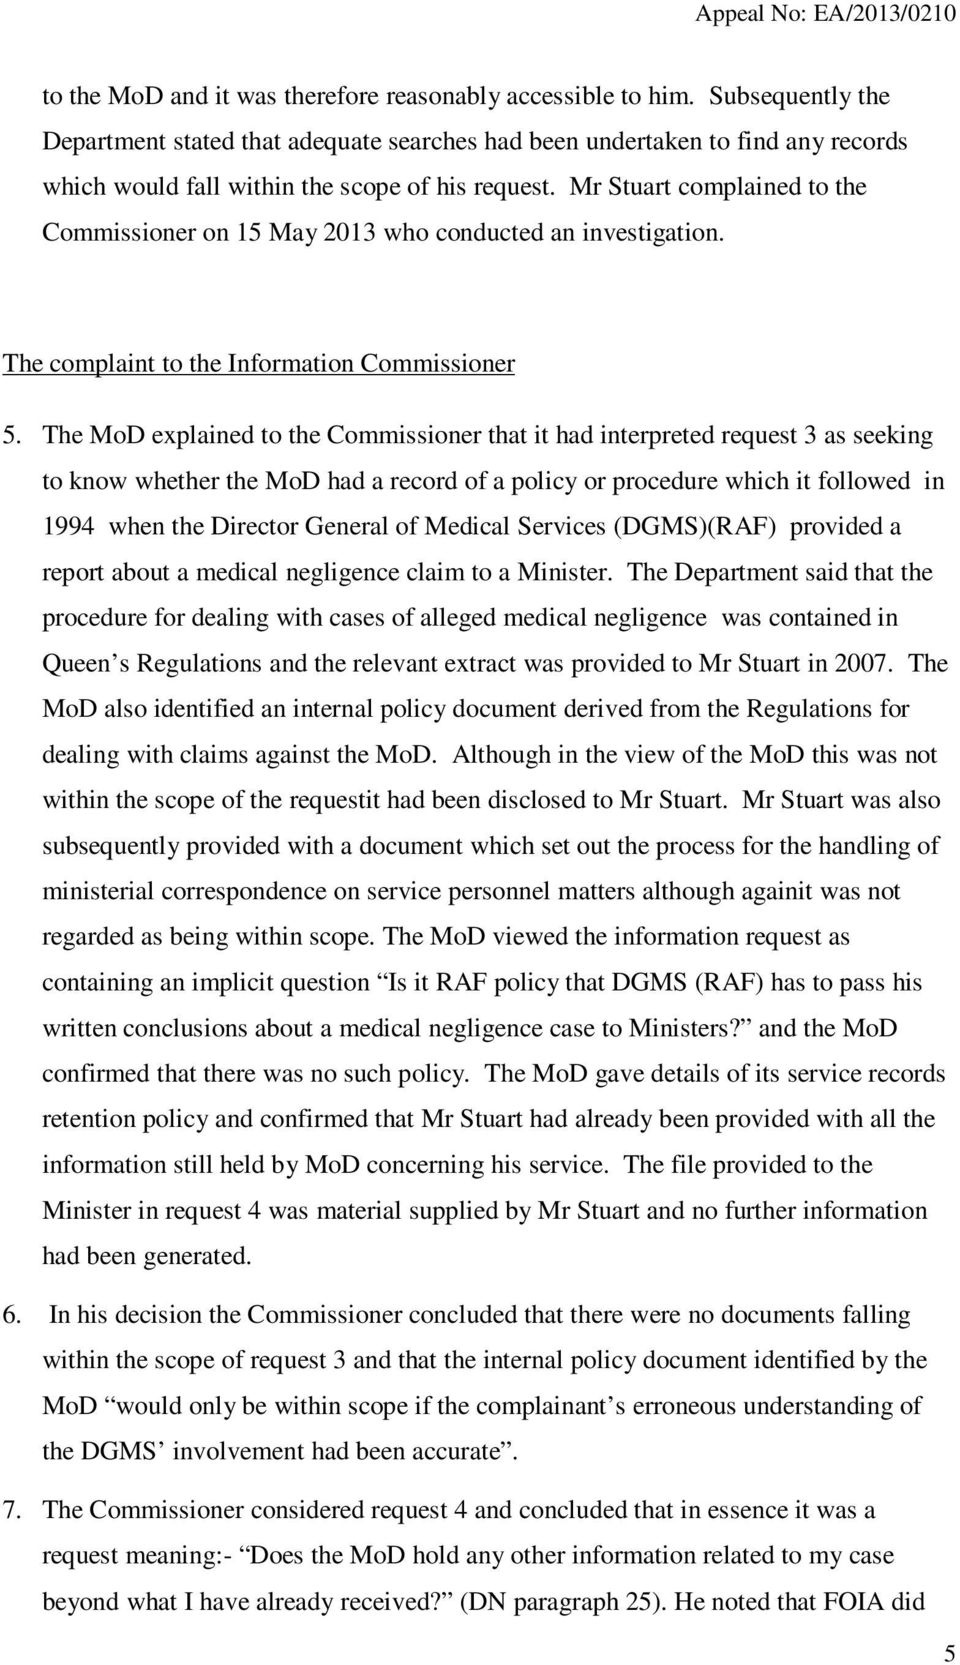 Mr Stuart complained to the Commissioner on 15 May 2013 who conducted an investigation. The complaint to the Information Commissioner 5.